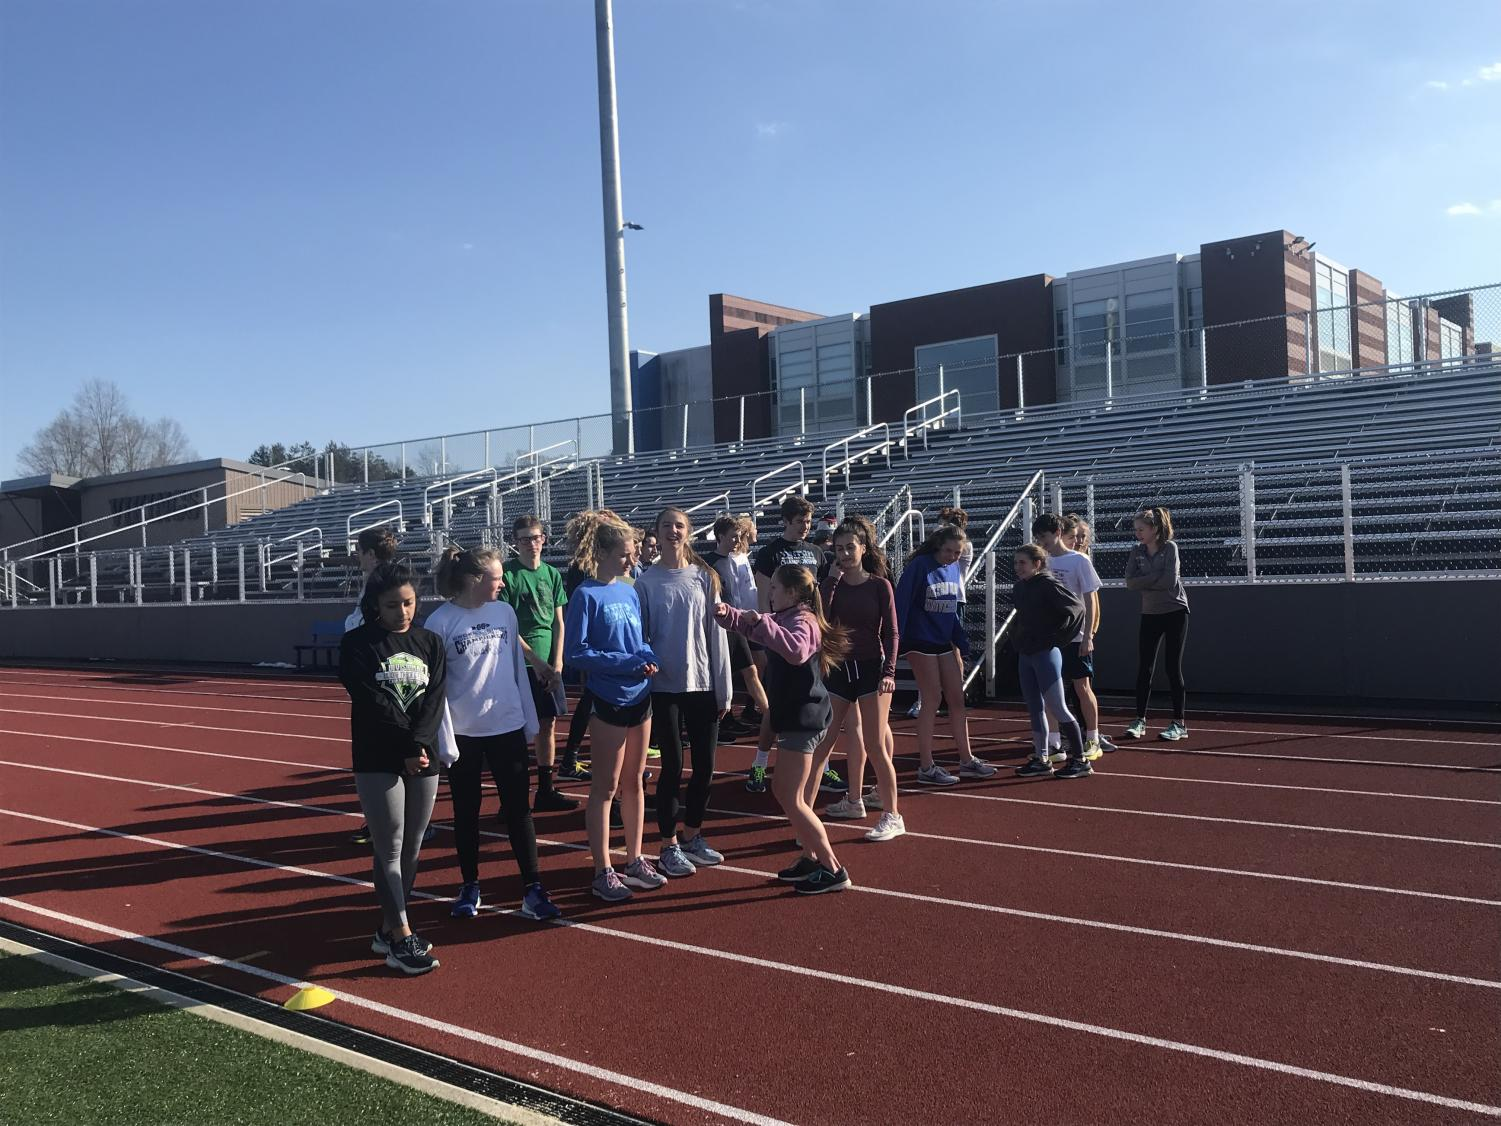 Triton's distance runners hard at work out on the track.